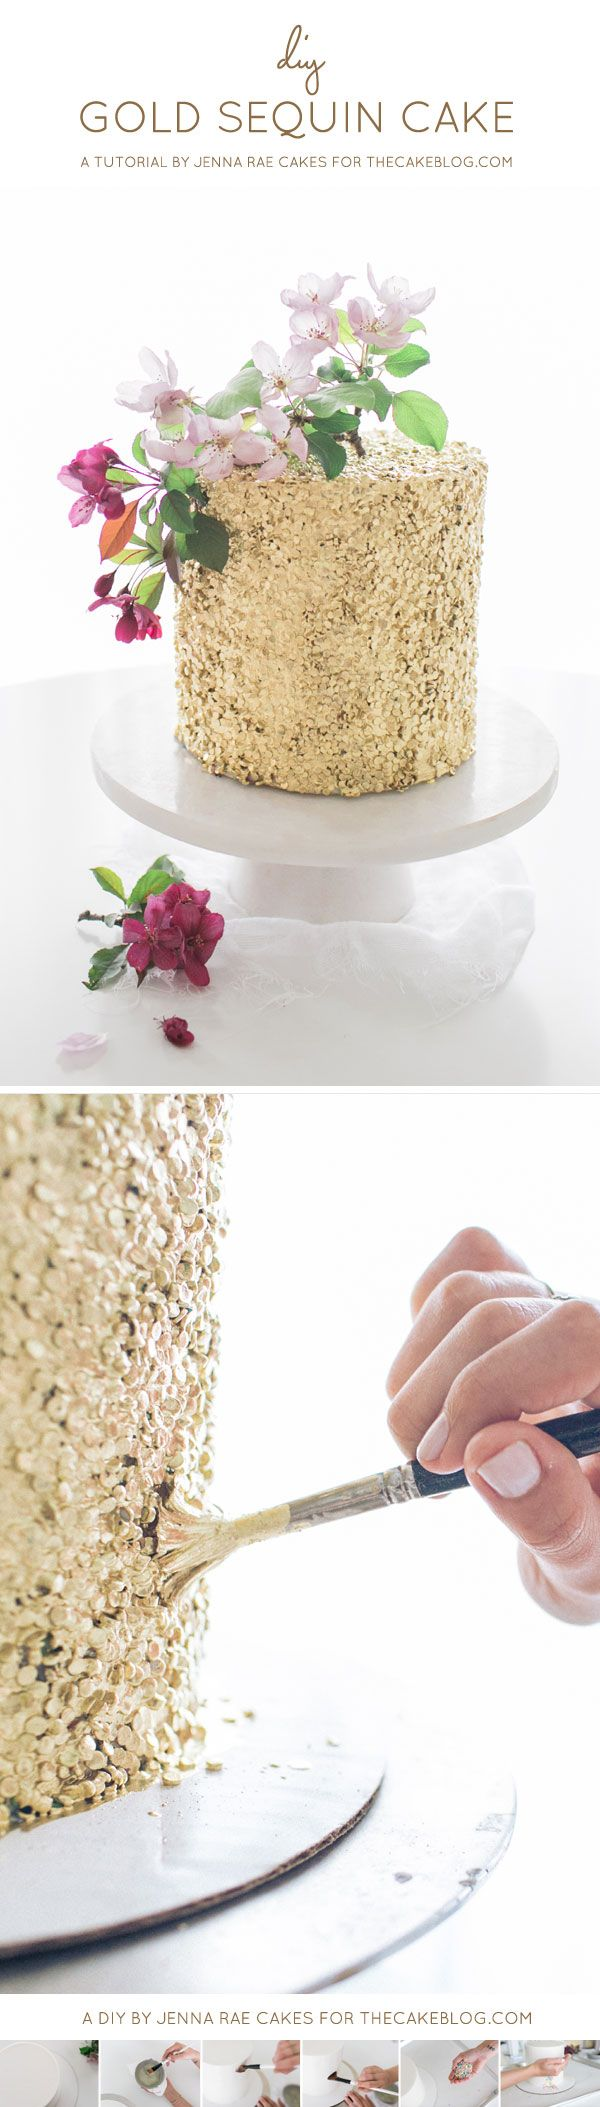 Gold Sequin Cake! This will be so beautiful for weddings in any season.